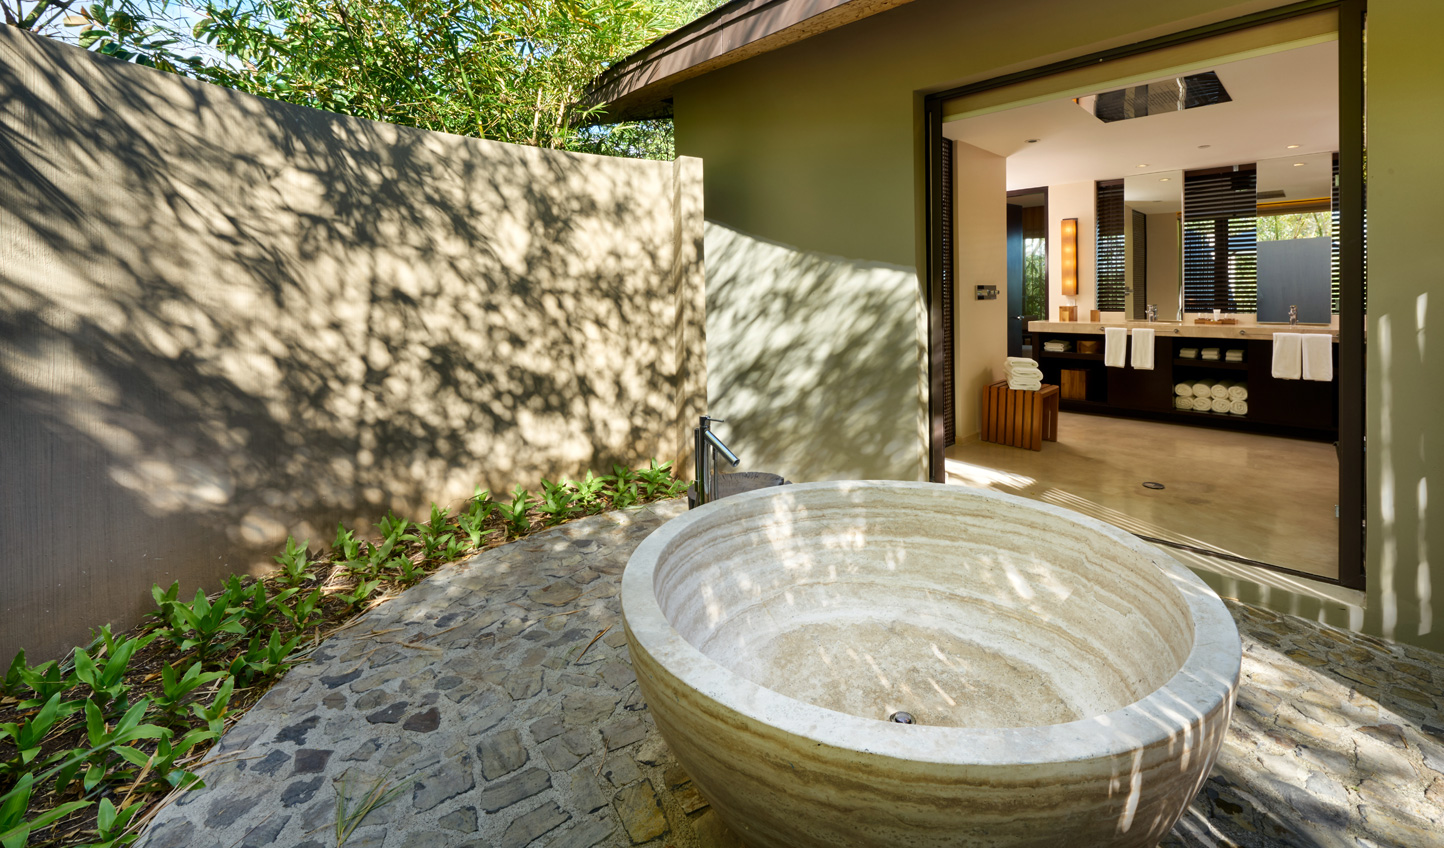 Relax in your tub under the hot sun